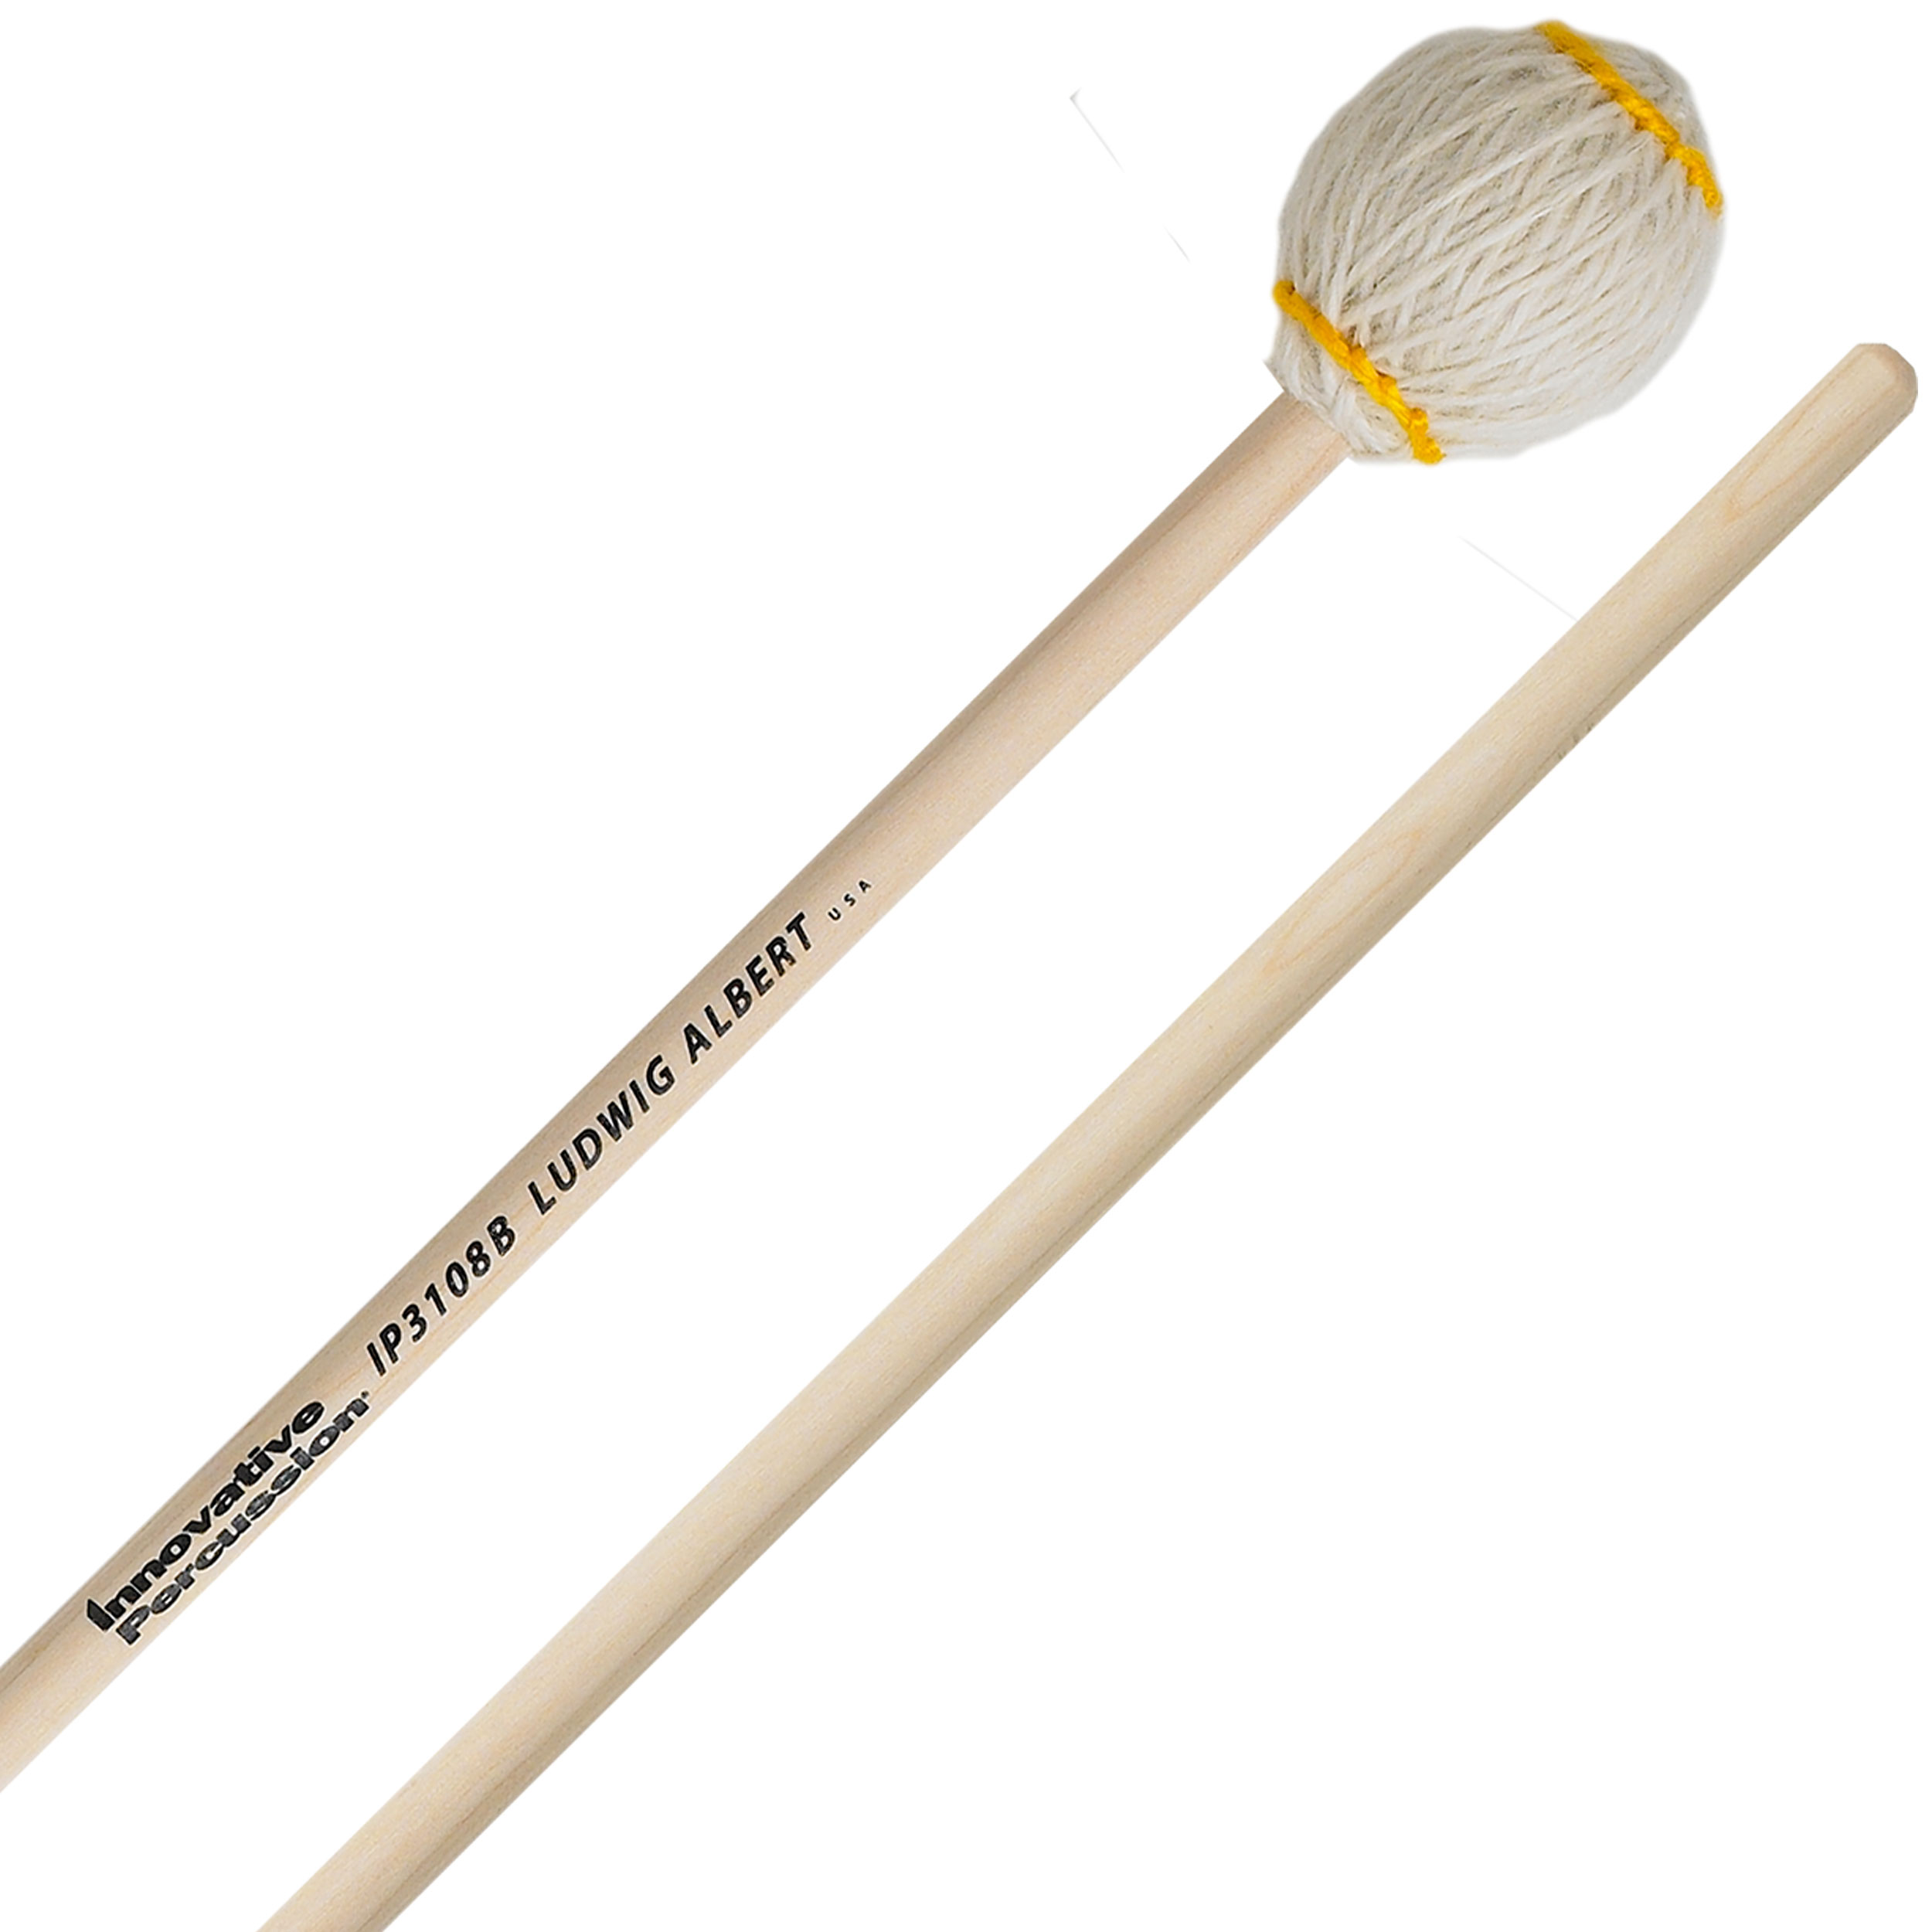 Innovative Percussion Ludwig Albert Signature Very Hard Marimba Mallets with Birch Shafts